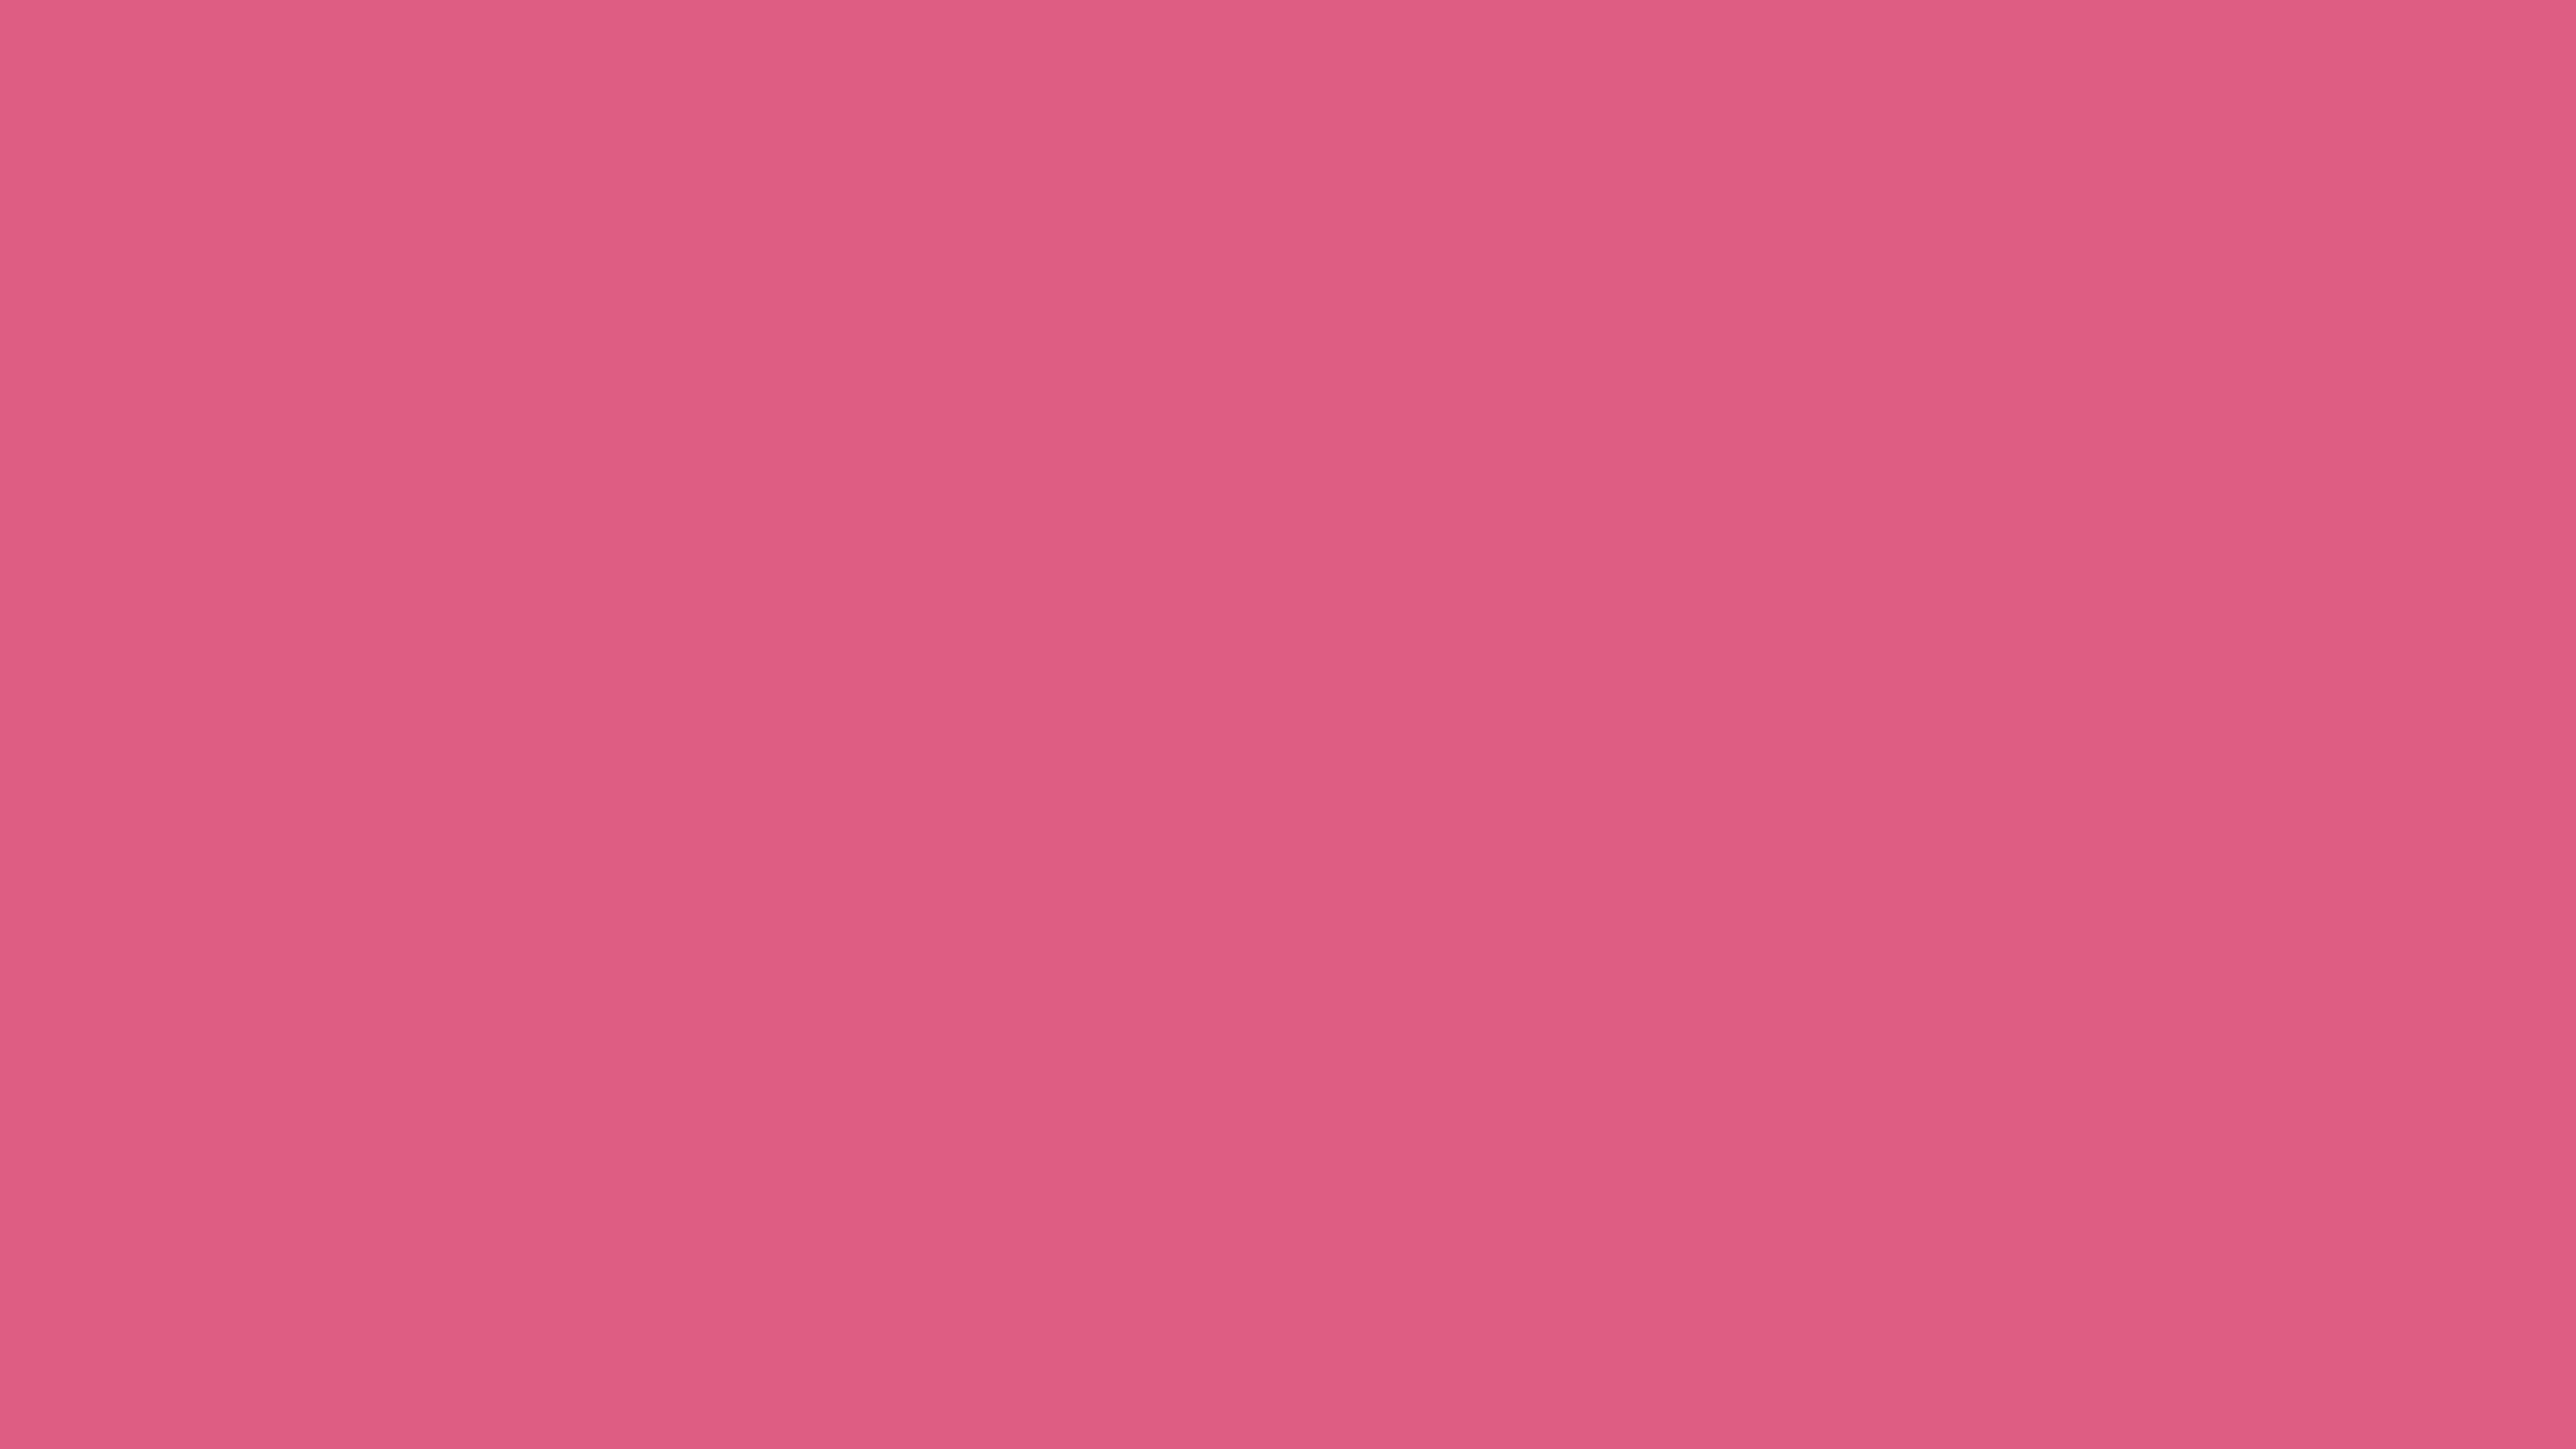 4096x2304 Blush Solid Color Background